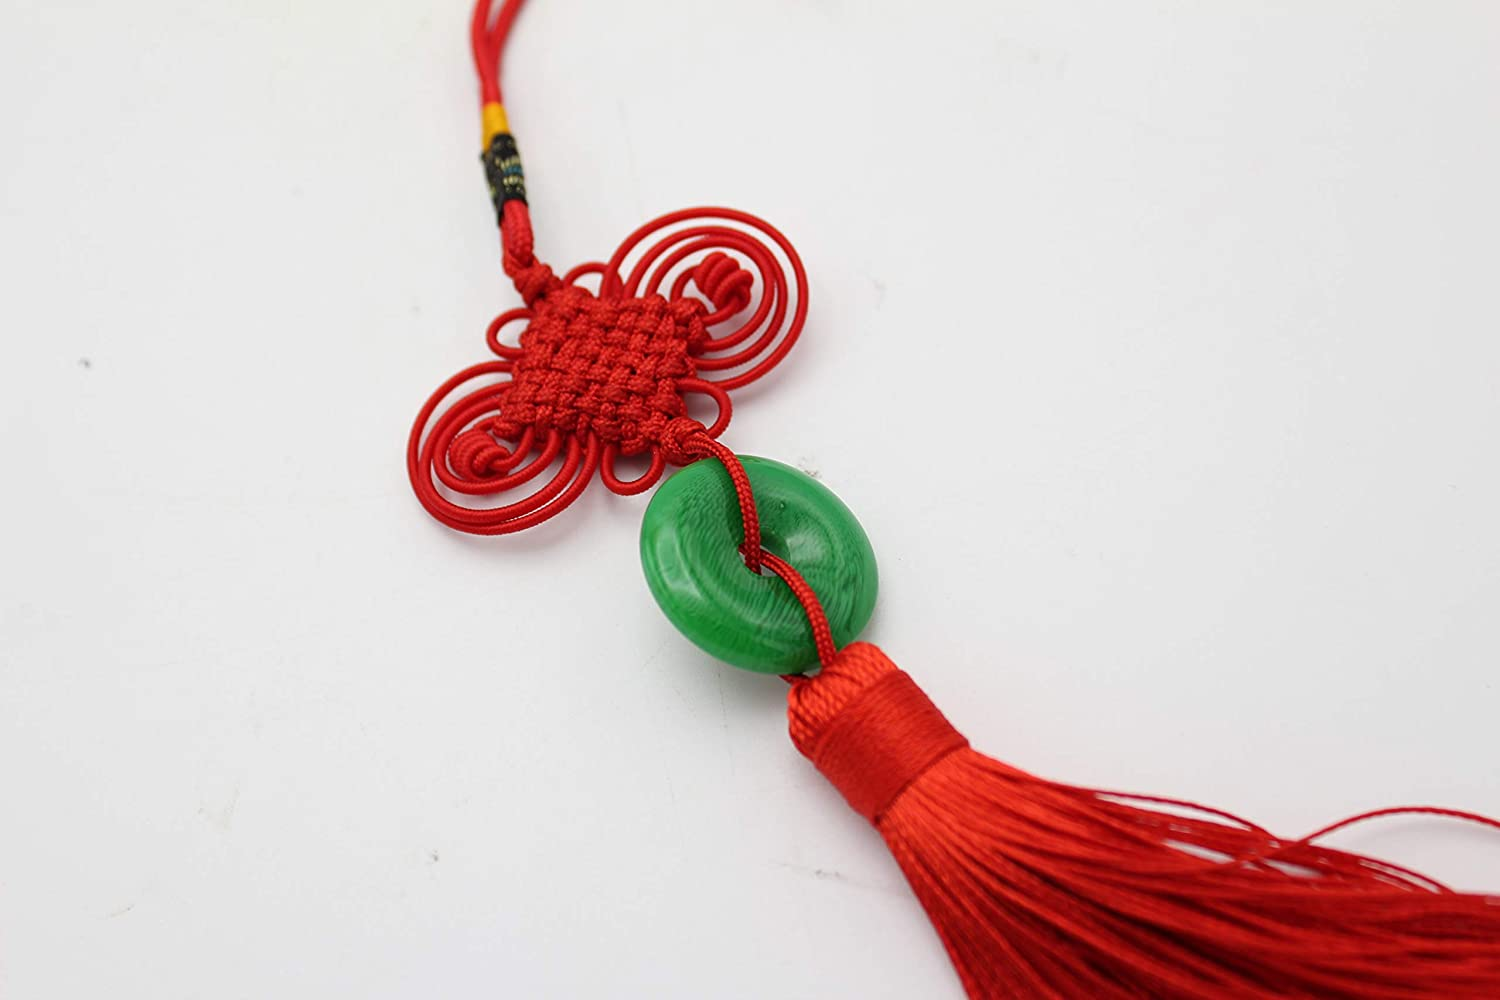 Zeen Accueil D/écorations Artisanat Feng Shui Noeud Chinois Mode Tassel Chine Mascotte Lucky Charm